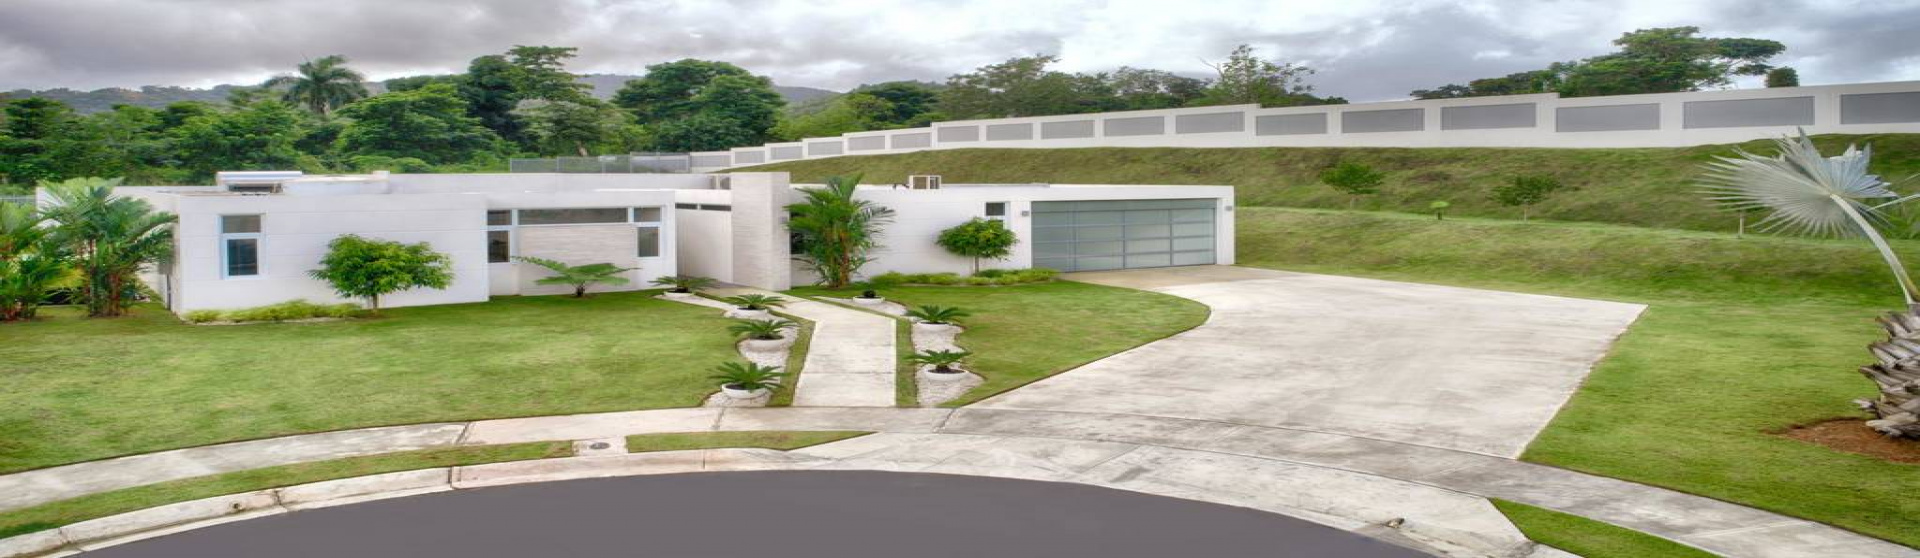 Guaynabo, Guaynabo Municipio, 4 Bedrooms Bedrooms, ,4 BathroomsBathrooms,Apartment,For Sale,Guaynabo,18755